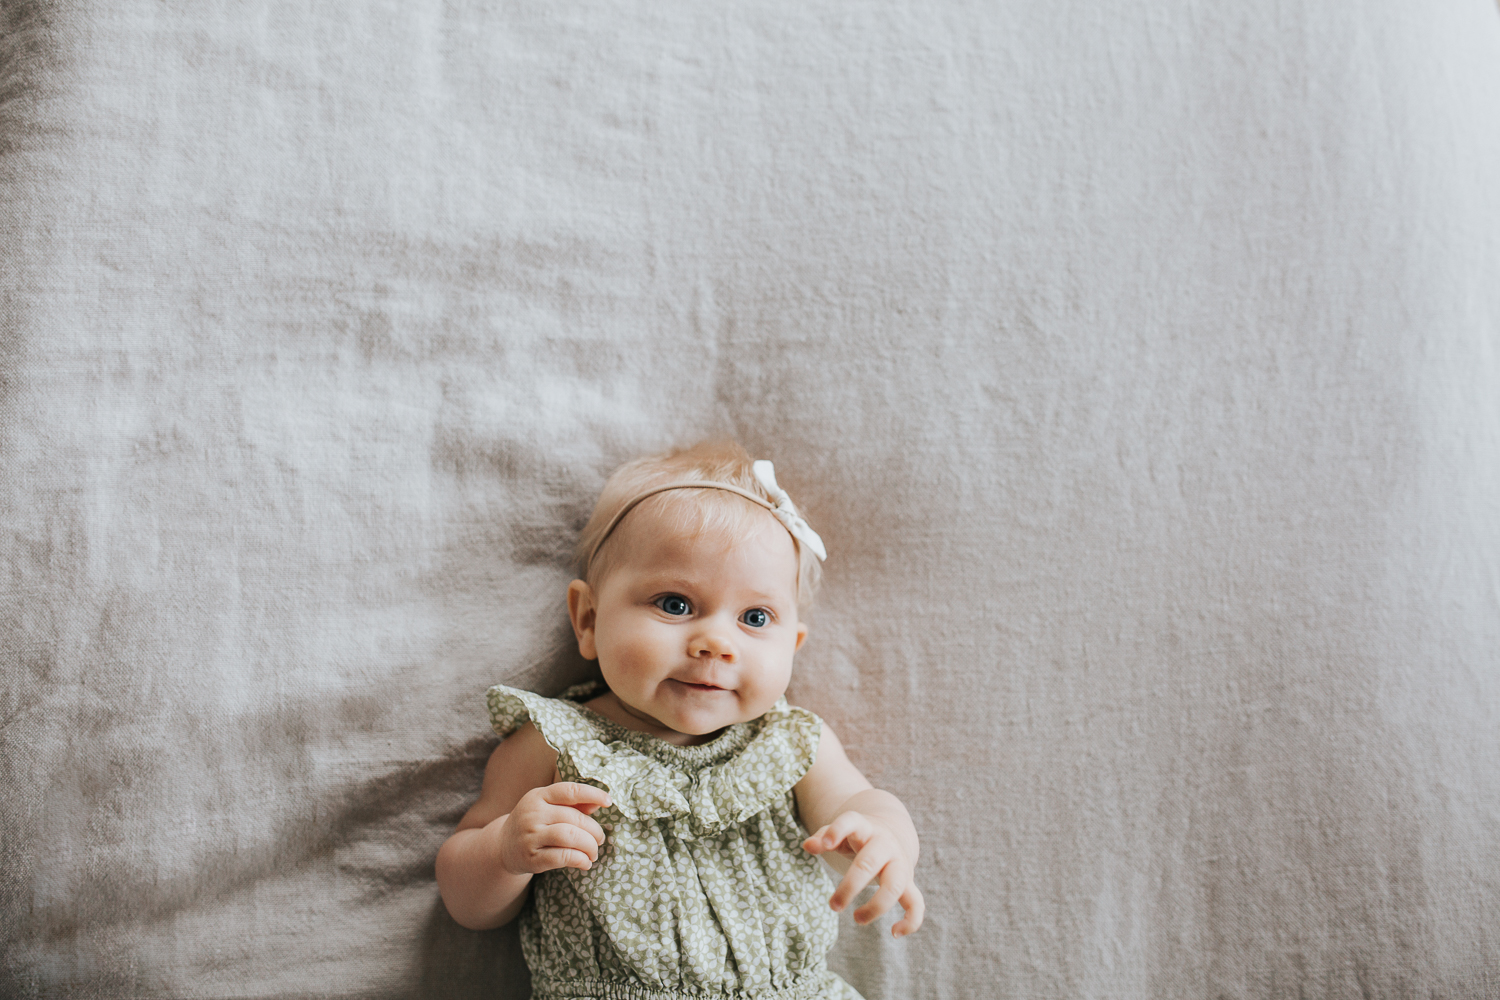 6 month old baby girl with blonde hair and blue eyes lying on bed - Newmarket Family Lifestyle Photography